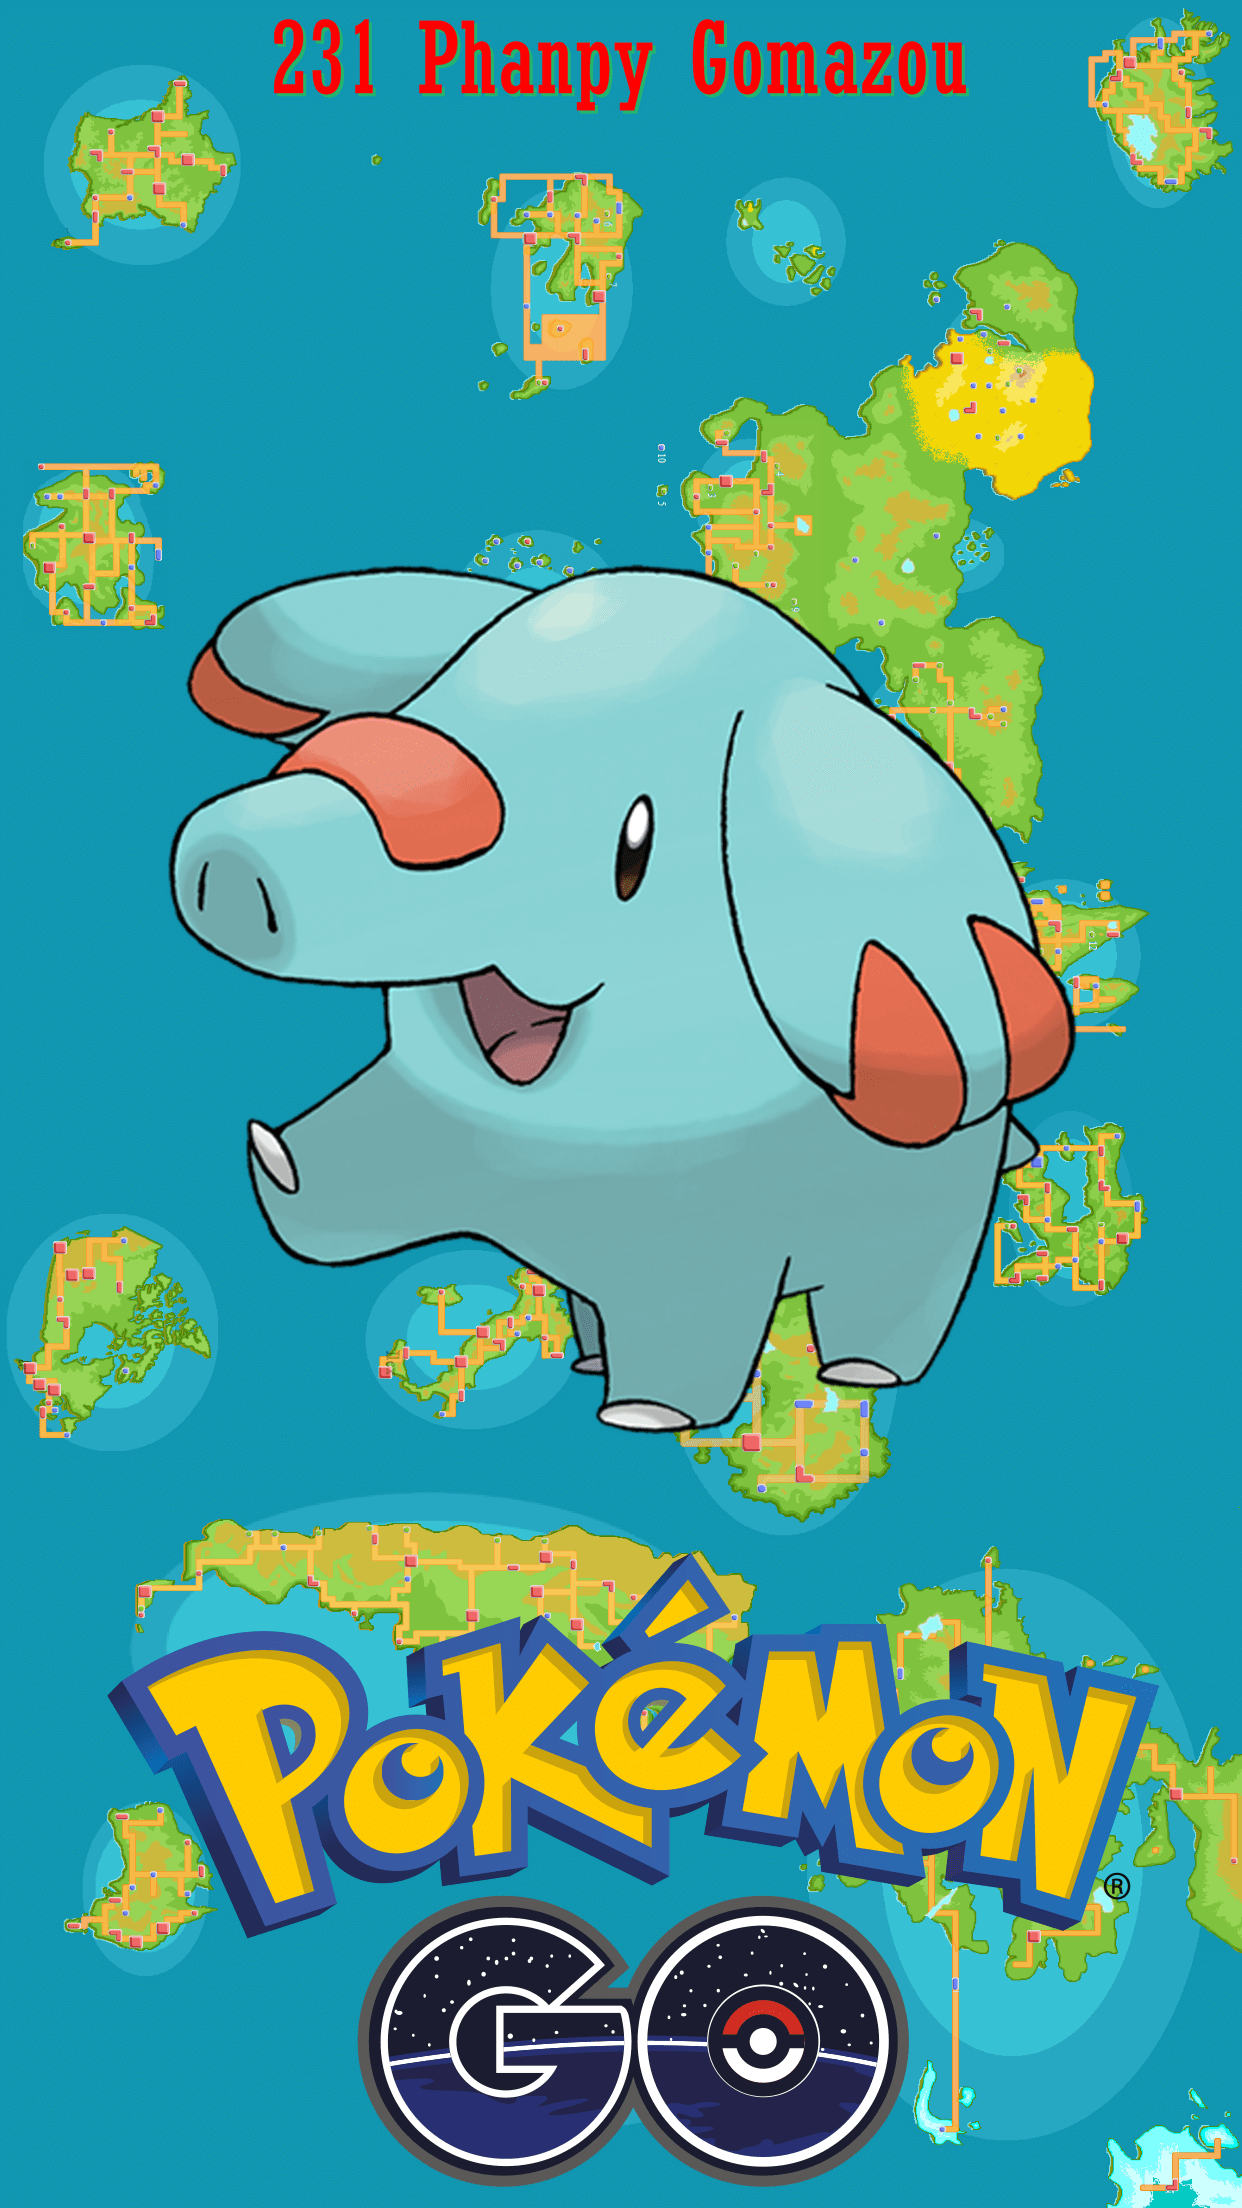 231 Street Map Phanpy Gomazou | Wallpaper